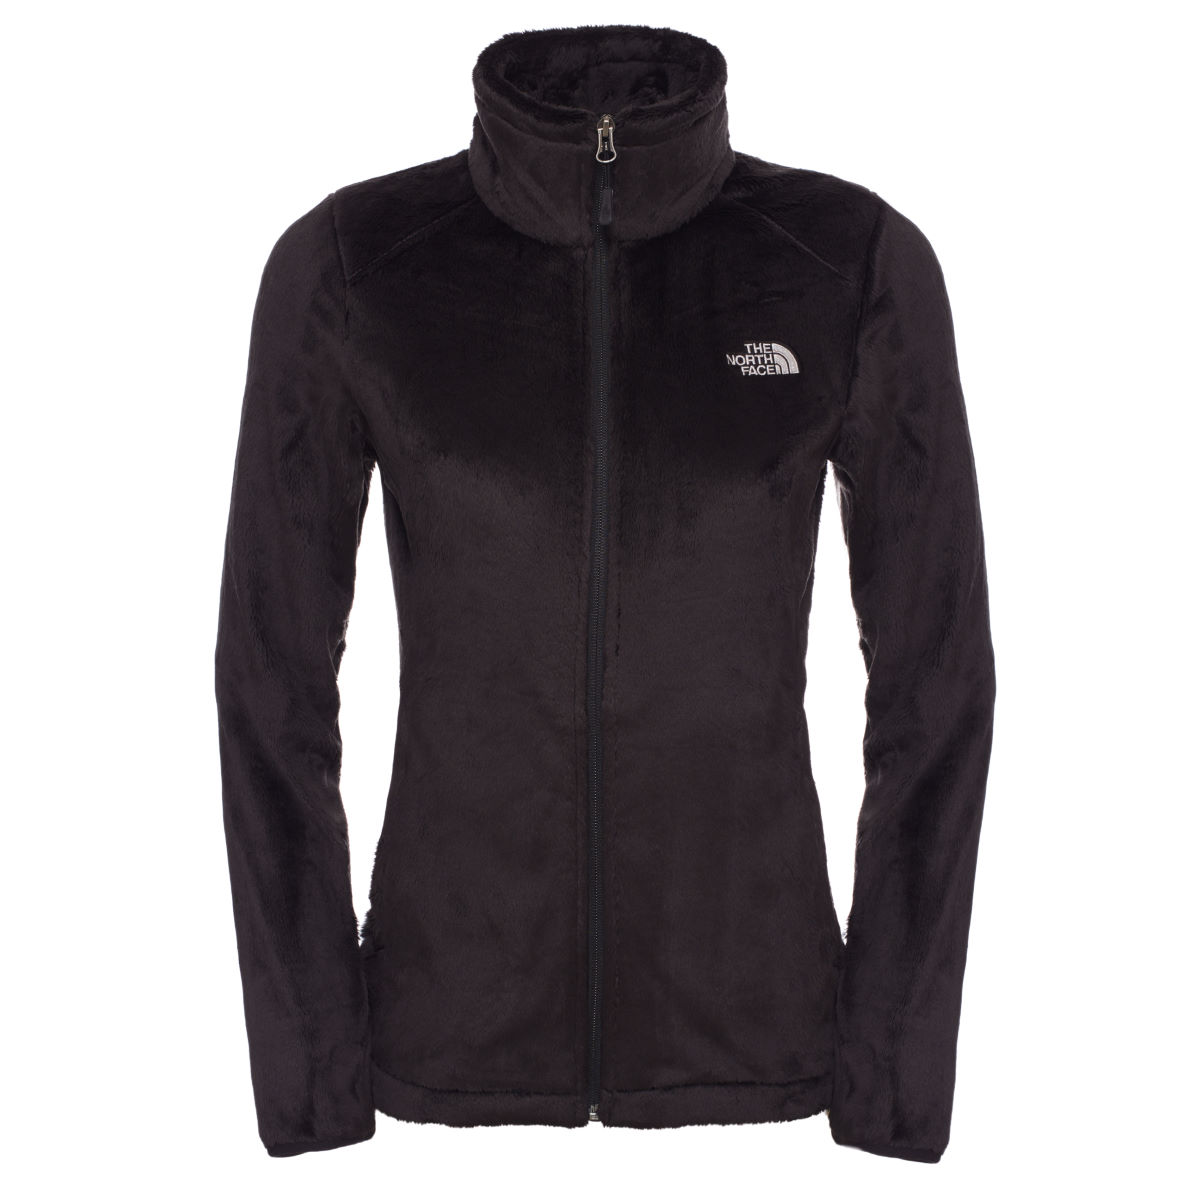 Veste Femme The North Face Osito 2 - M TNF Black Polaires légères